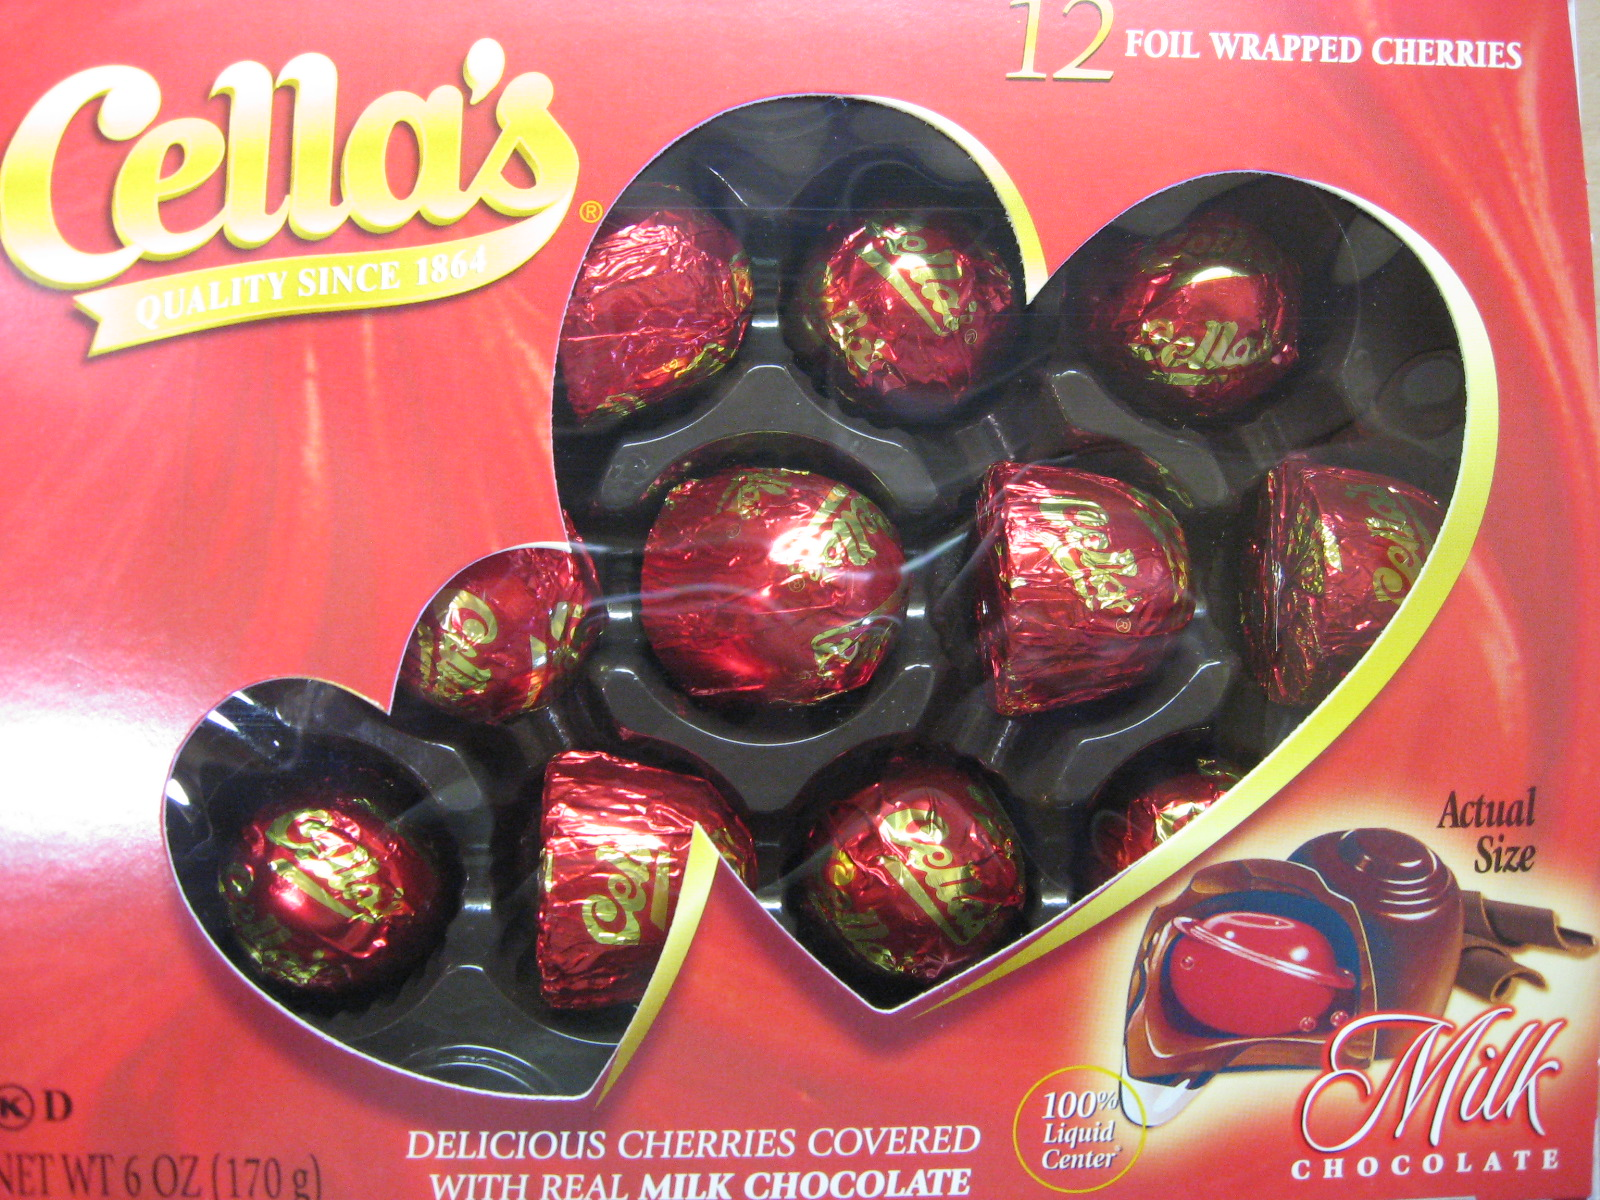 How To Make Cella S Chocolate Covered Cherries